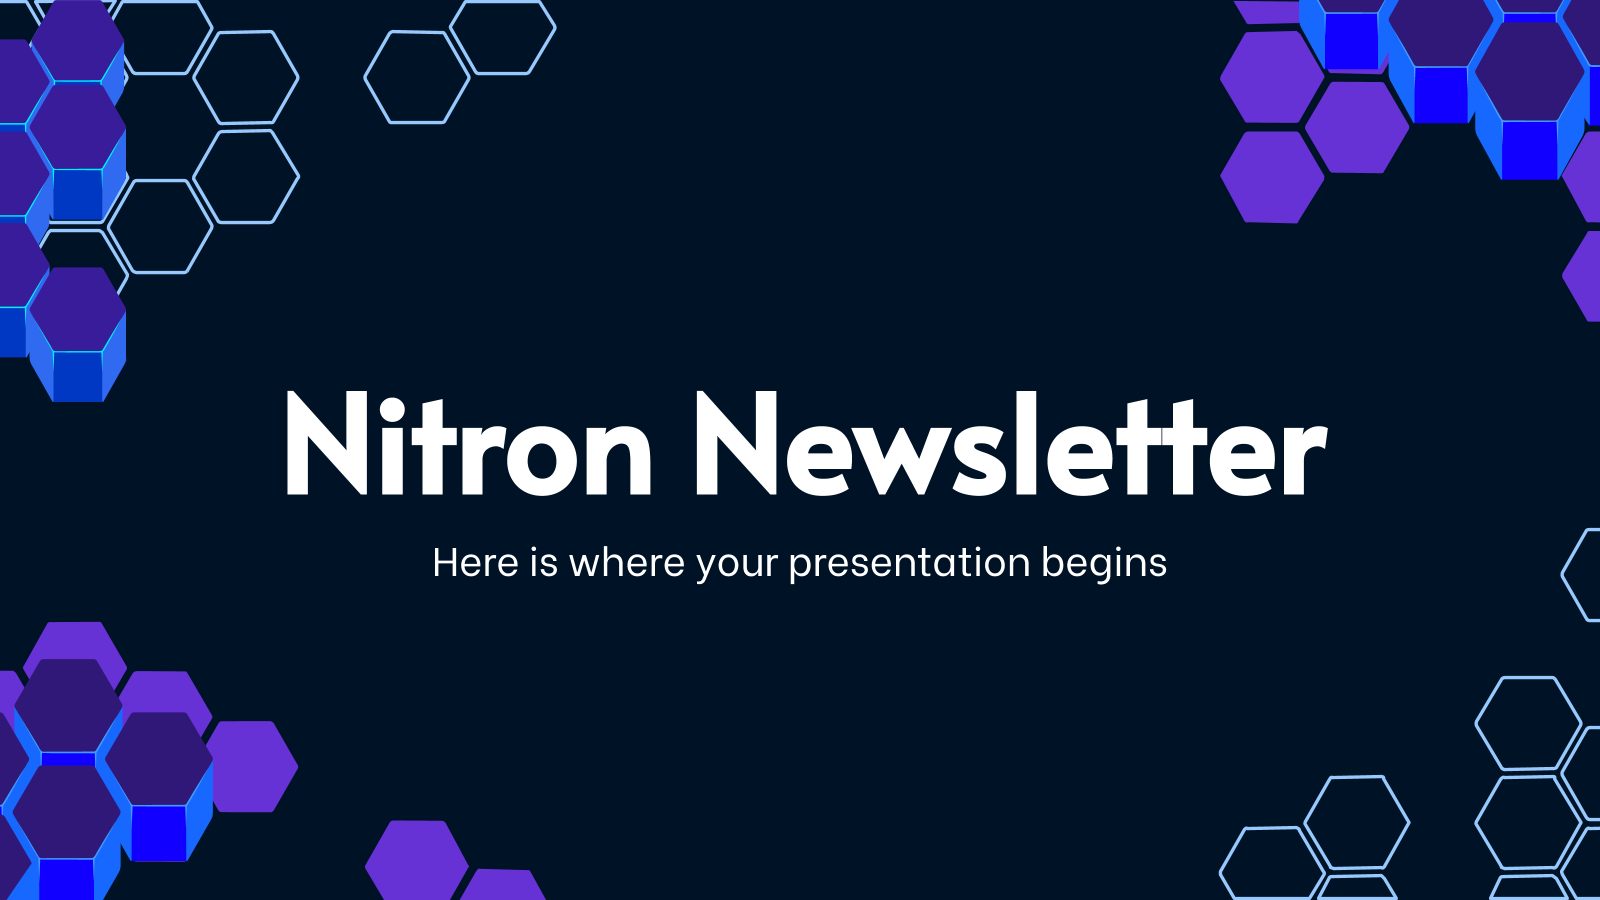 Nitron Newsletter presentation template